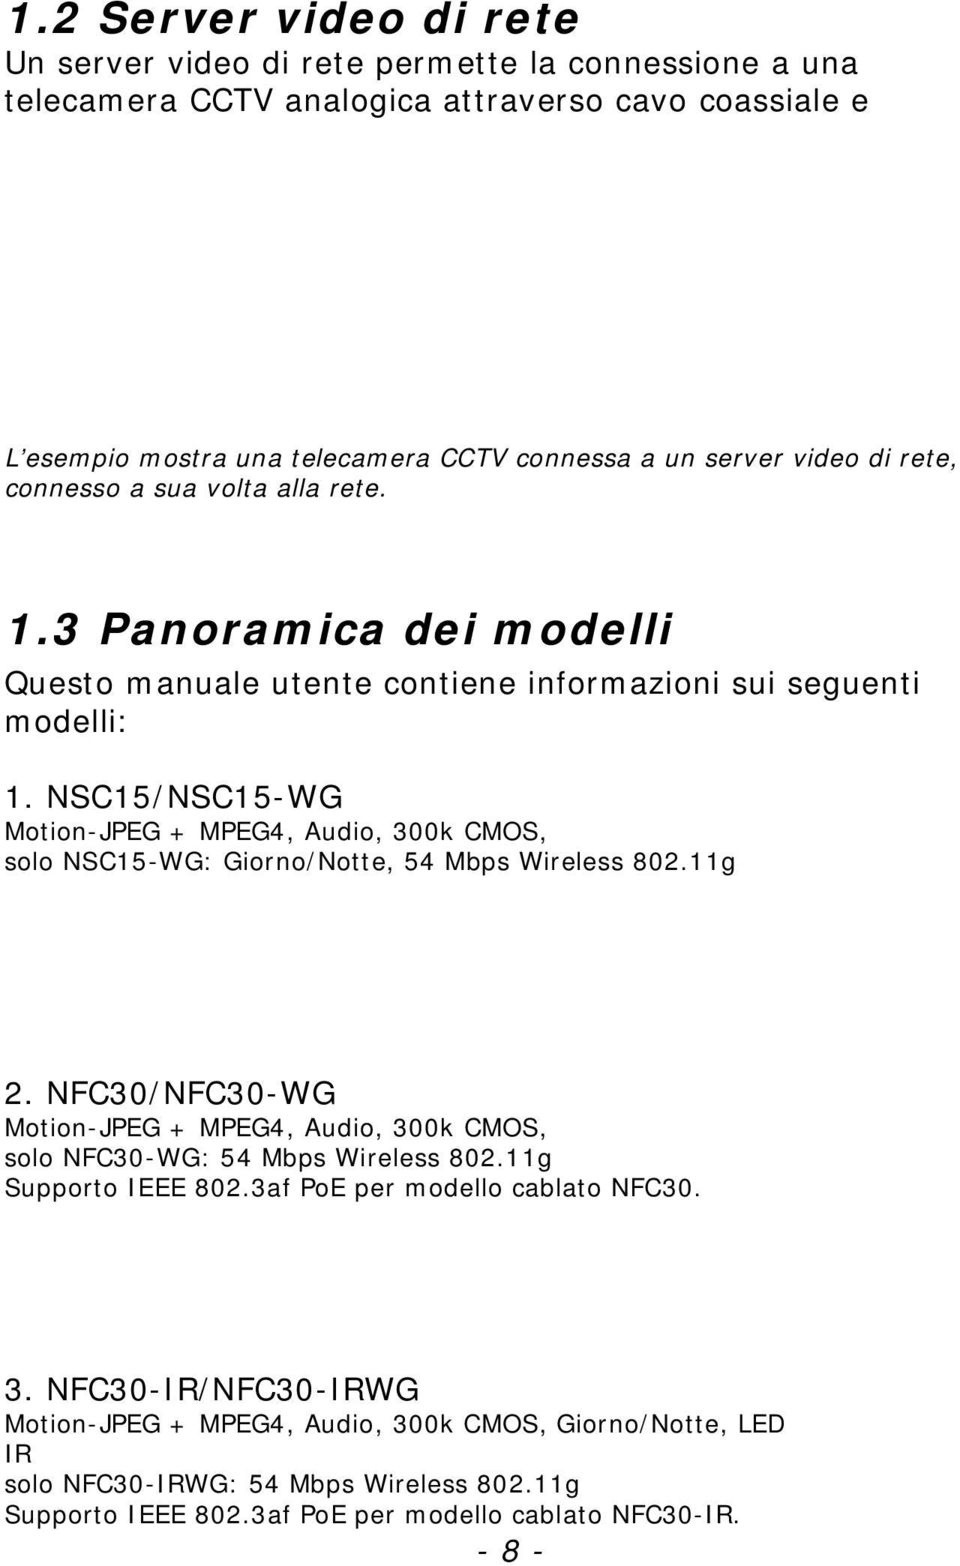 NSC15/NSC15-WG Motion-JPEG + MPEG4, Audio, 300k CMOS, solo NSC15-WG: Giorno/Notte, 54 Mbps Wireless 802.11g 2.